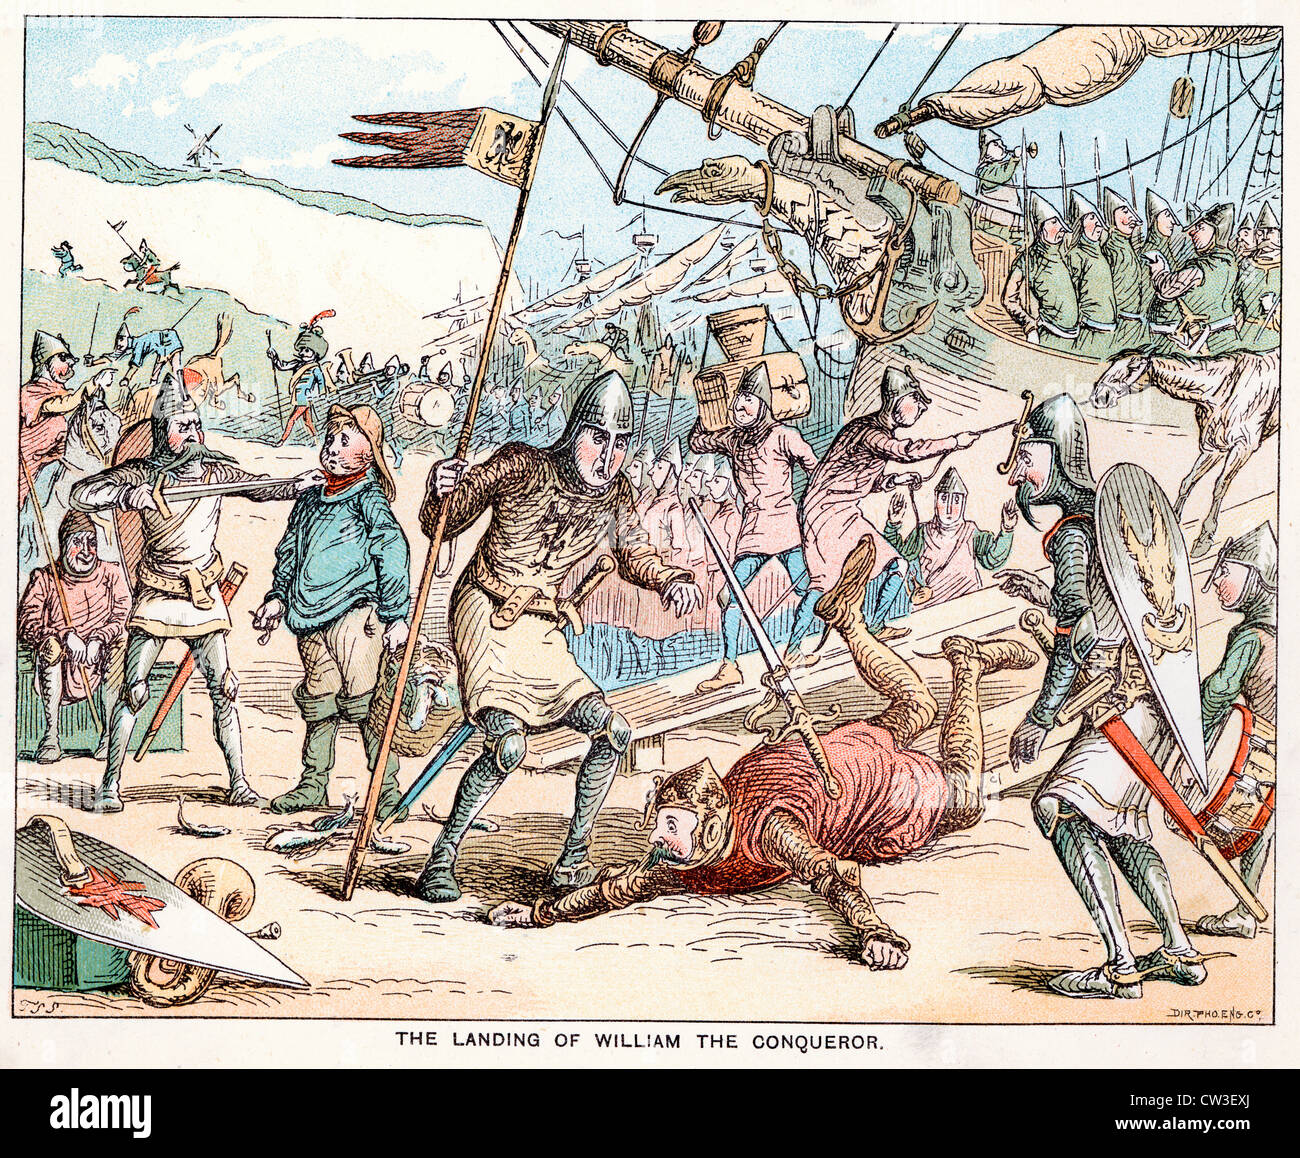 Comic Sketch by T S Seccombe showing The landing of William the Conqueror in 1066 - Stock Image